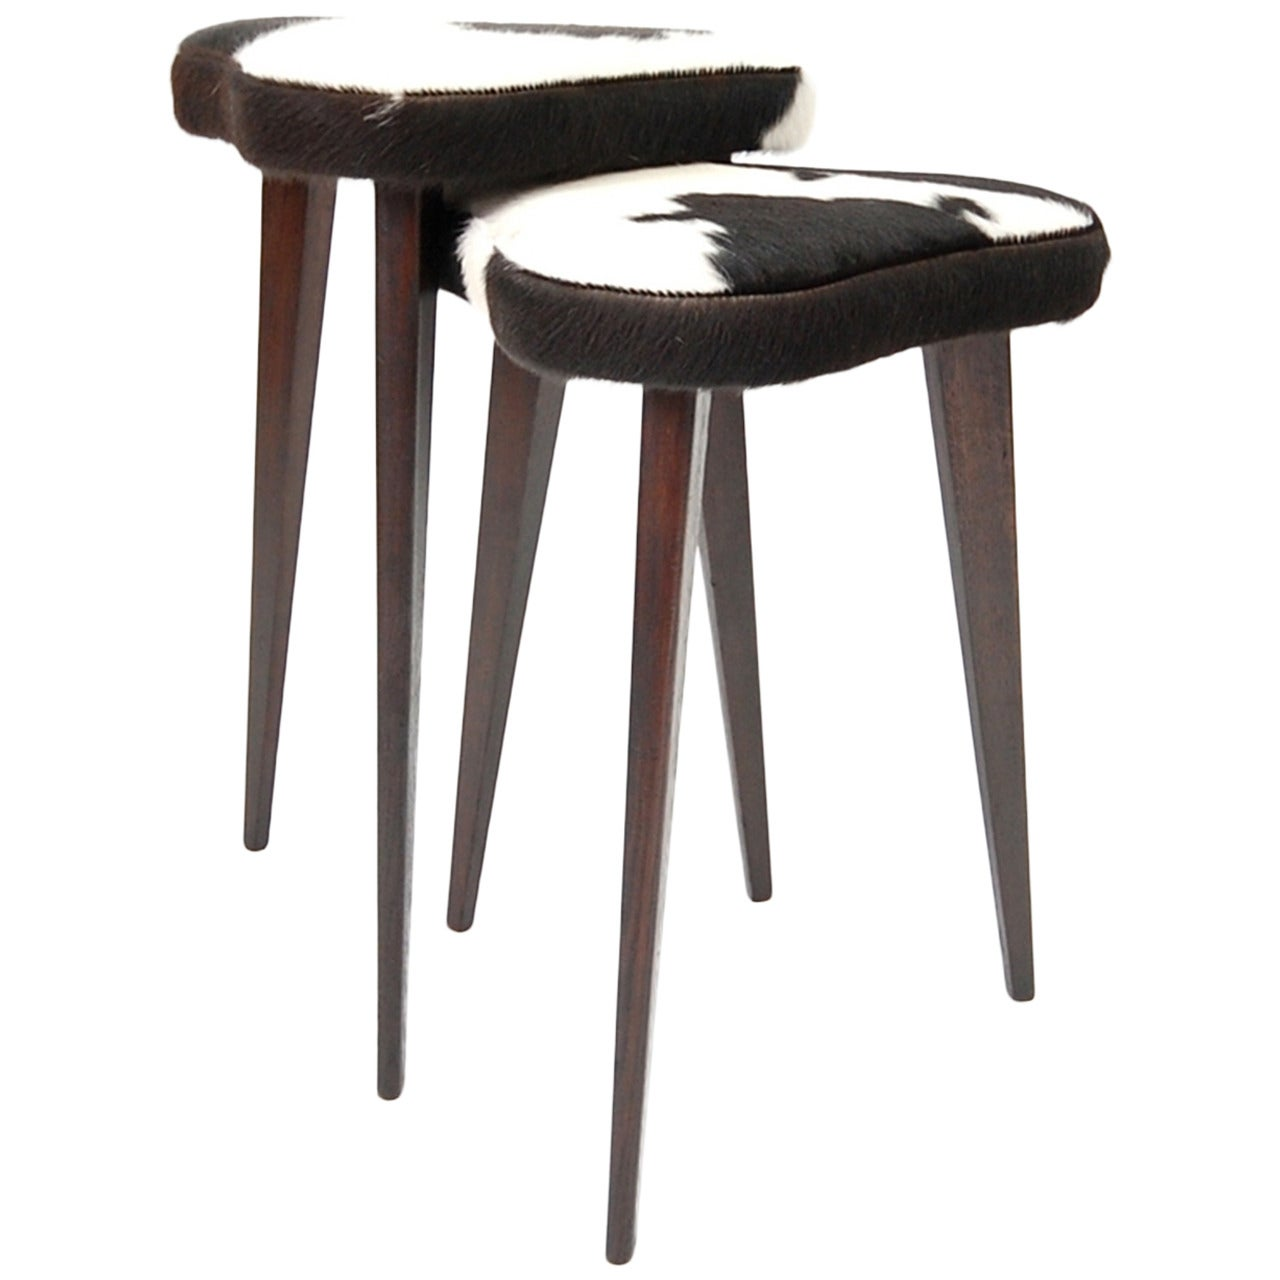 Pair of Small Nesting Stools from France